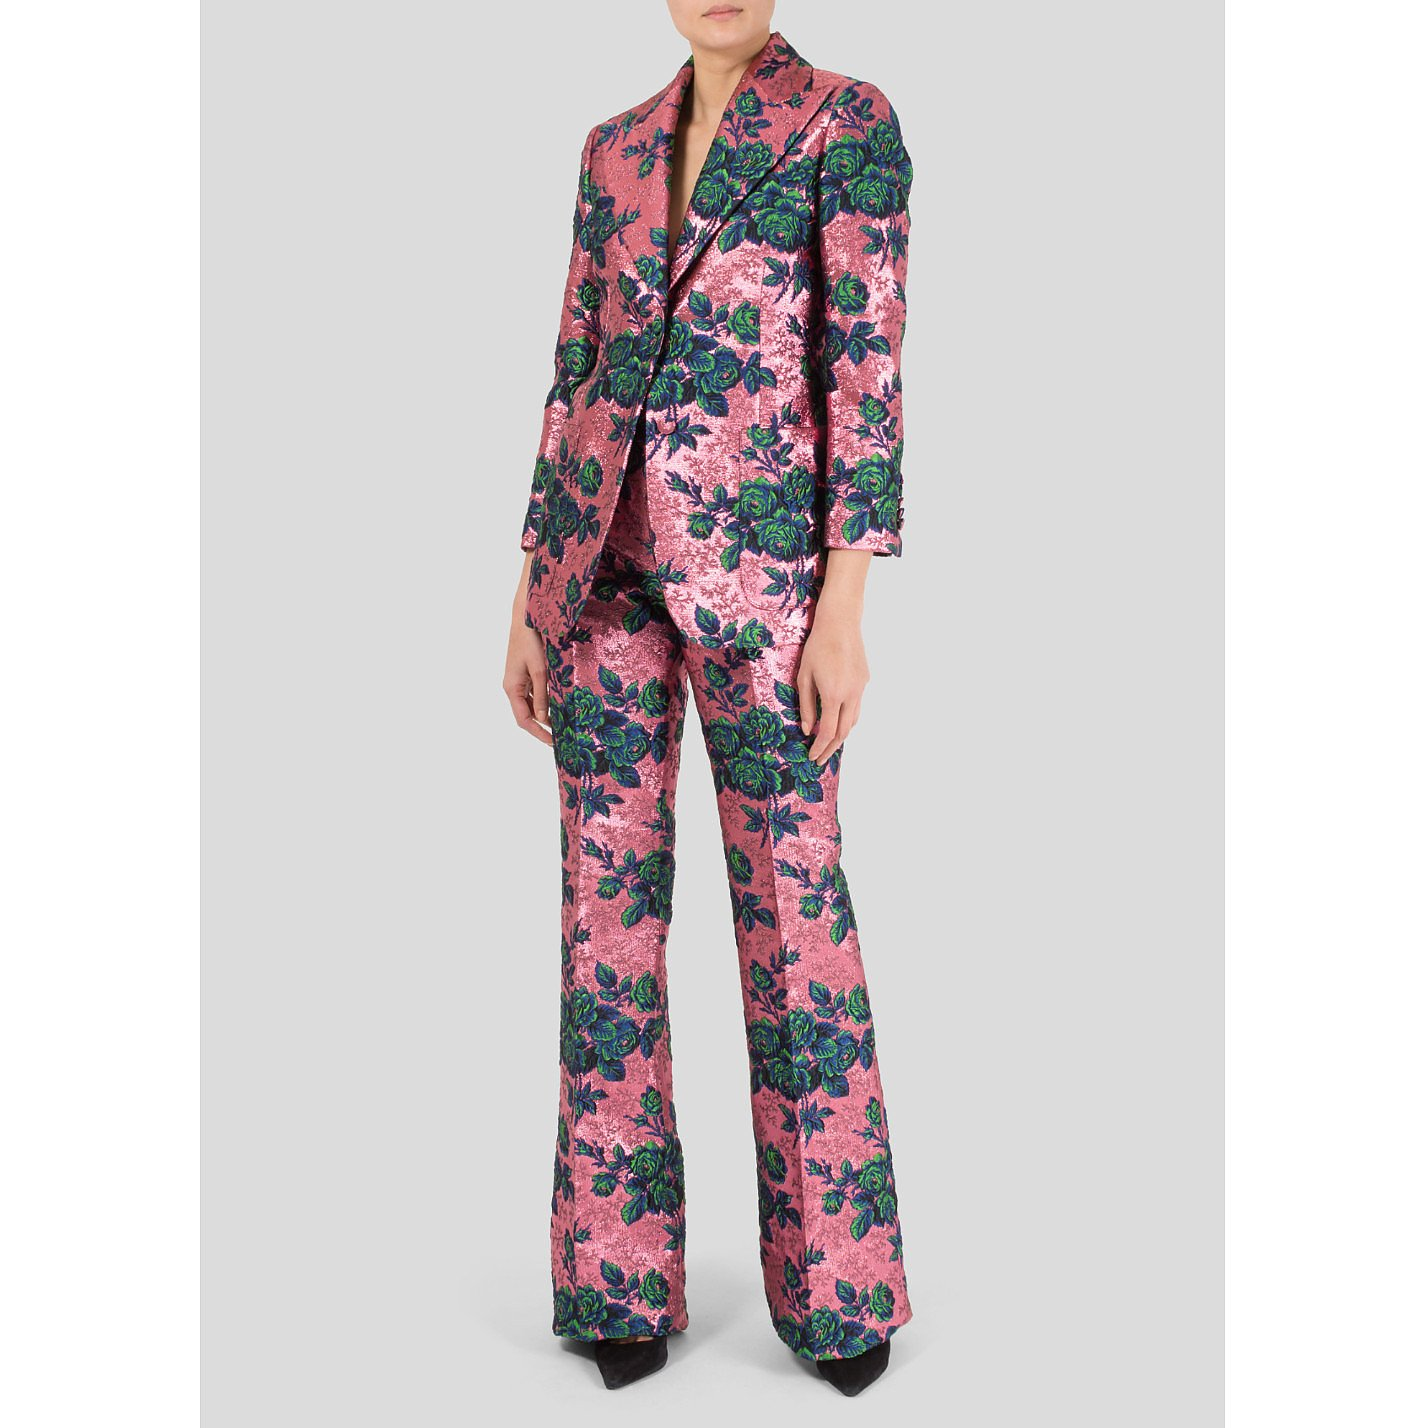 Gucci Metallic Floral Embroidered Trouser Suit